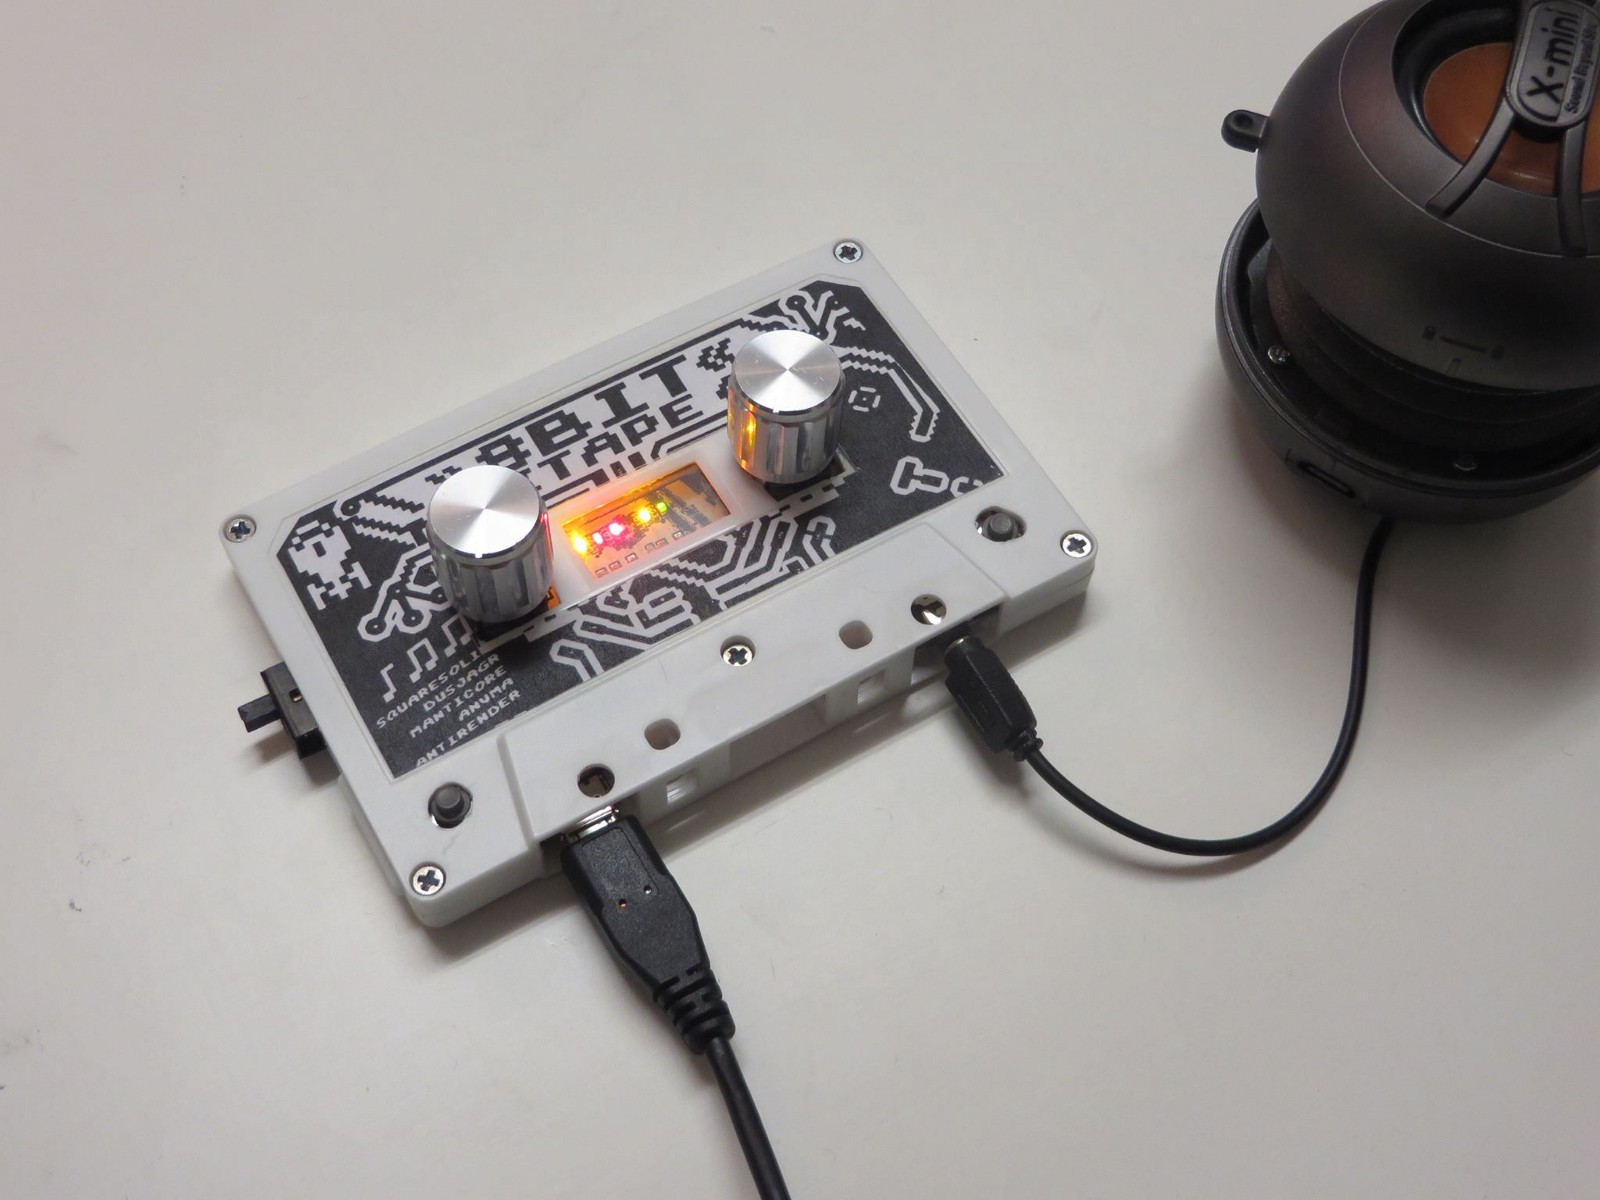 The 8bit Mix Tape Hackster Blog Circuit Board You Can See Evolution Of This Attiny84 And 85 Powered Project On Its Wiki Page From Humble Beginnings As A 01 Version With